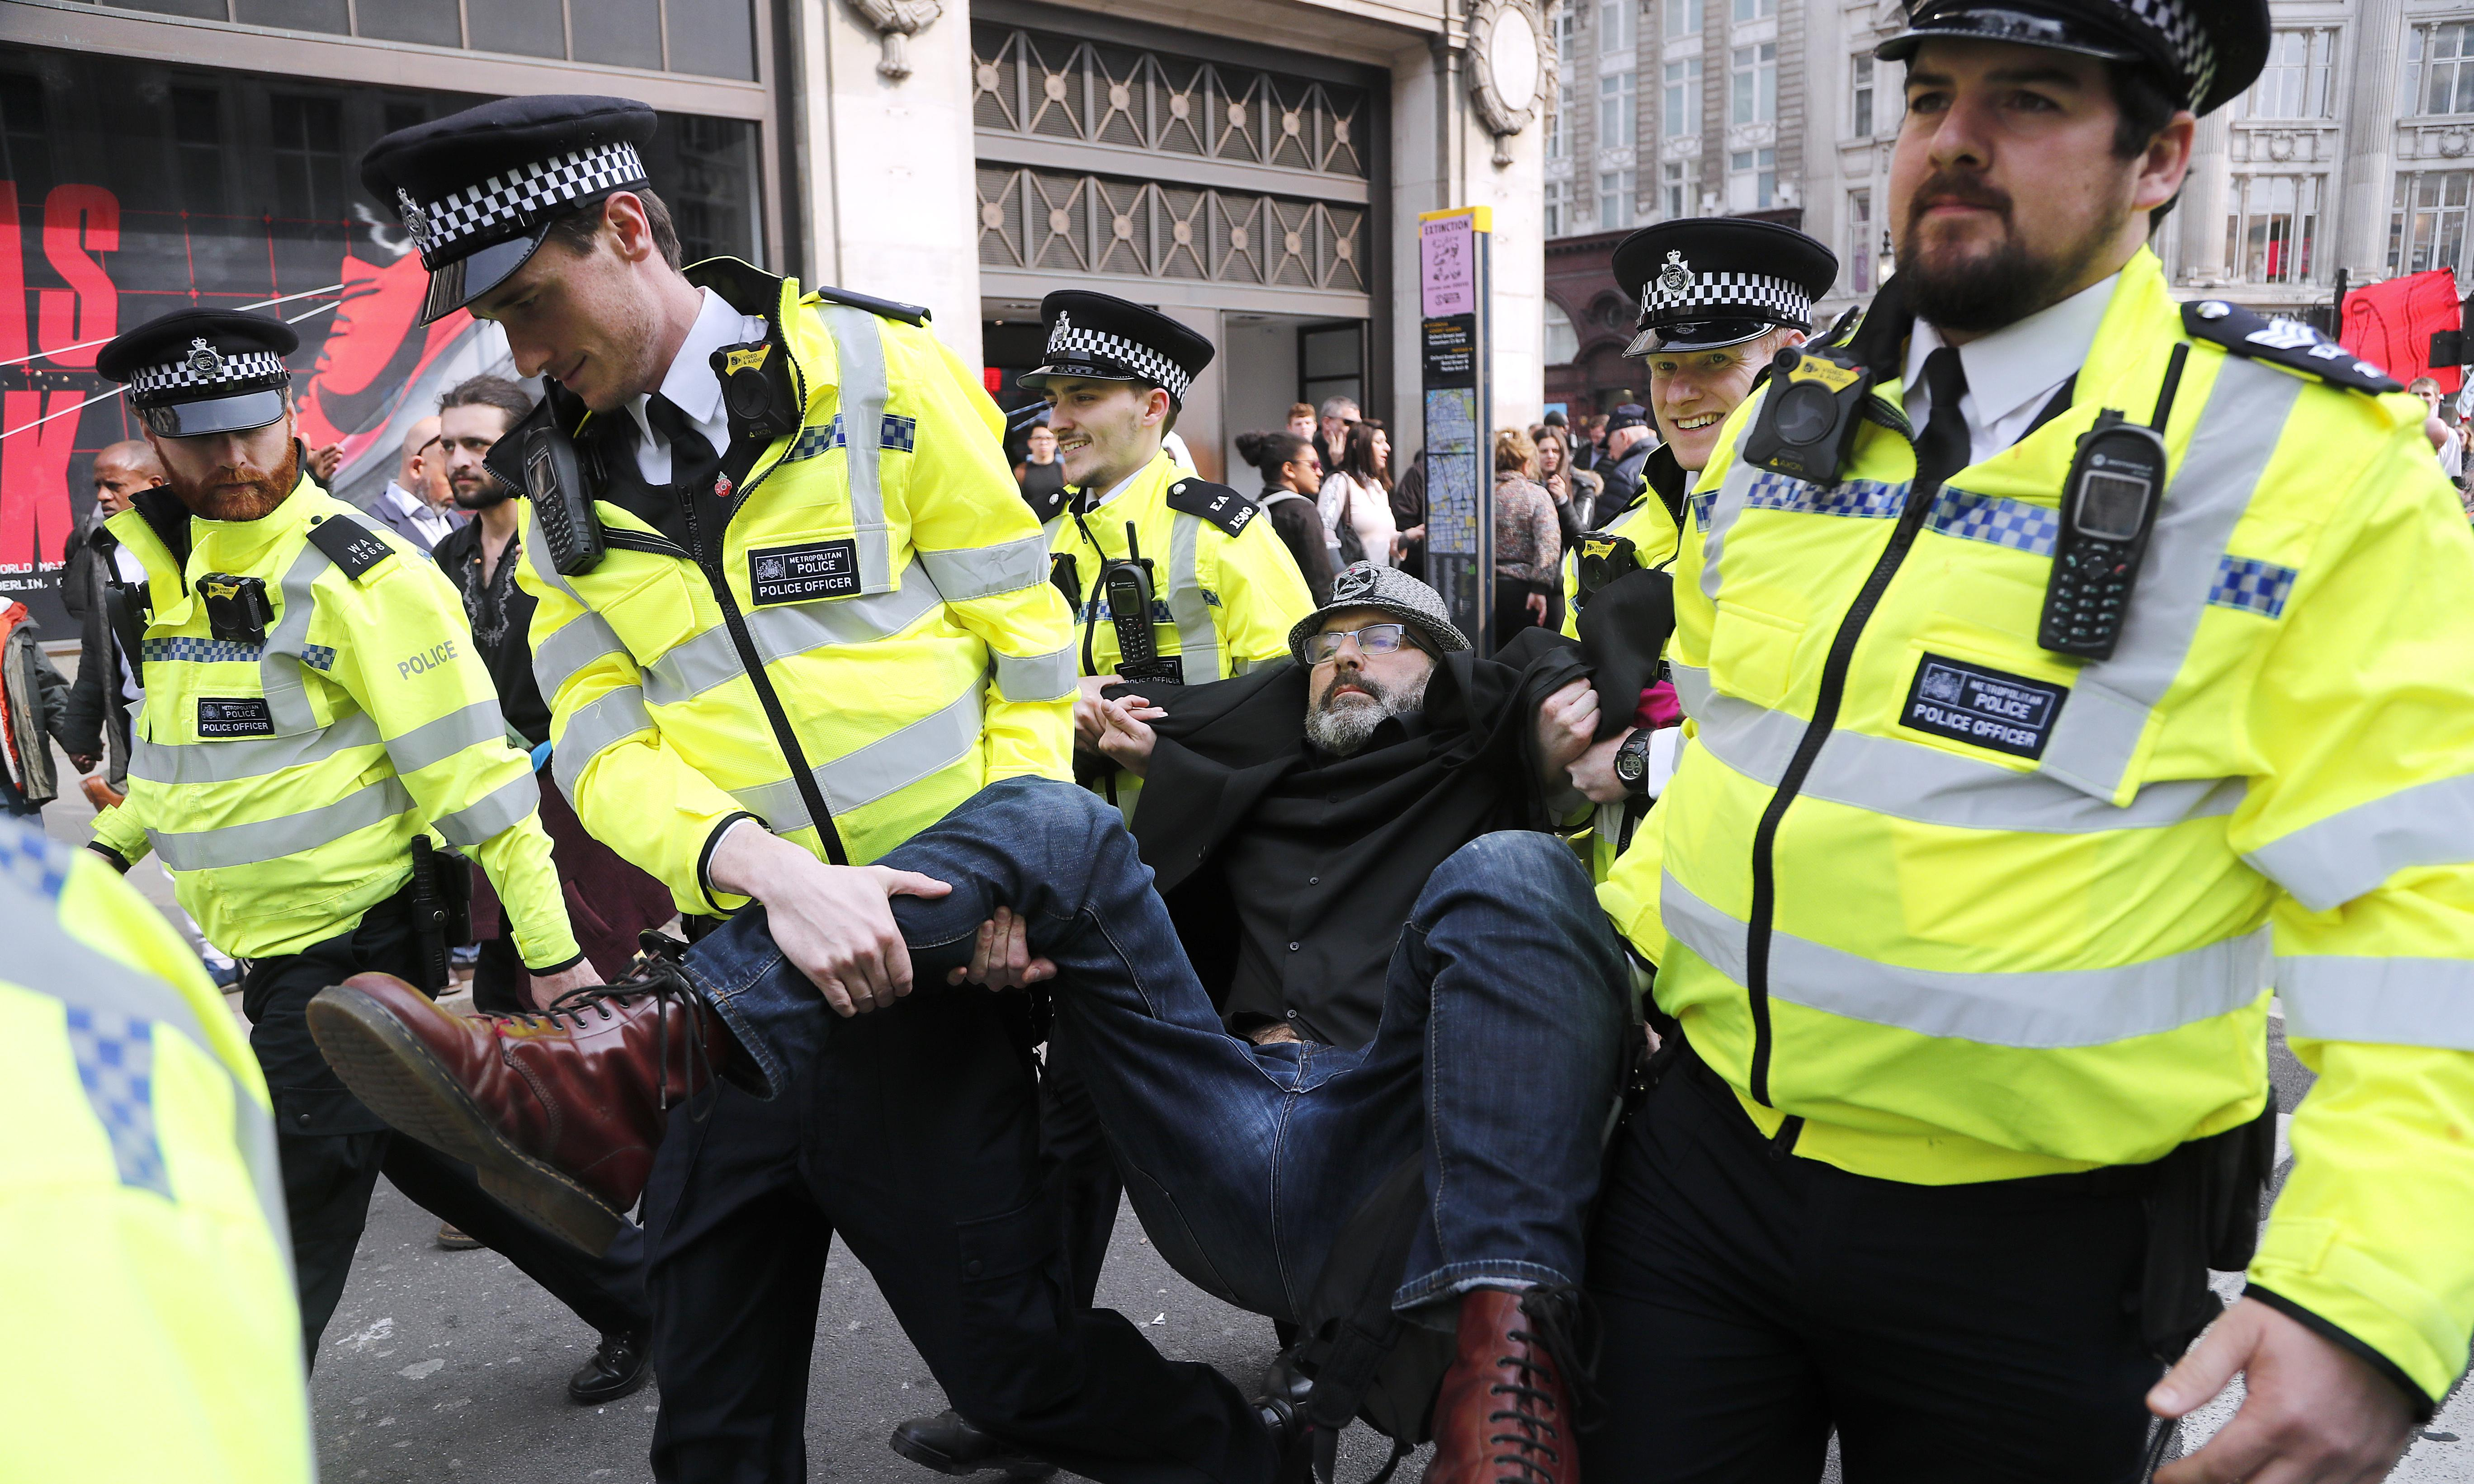 More than 400 arrested at Extinction Rebellion protests in London